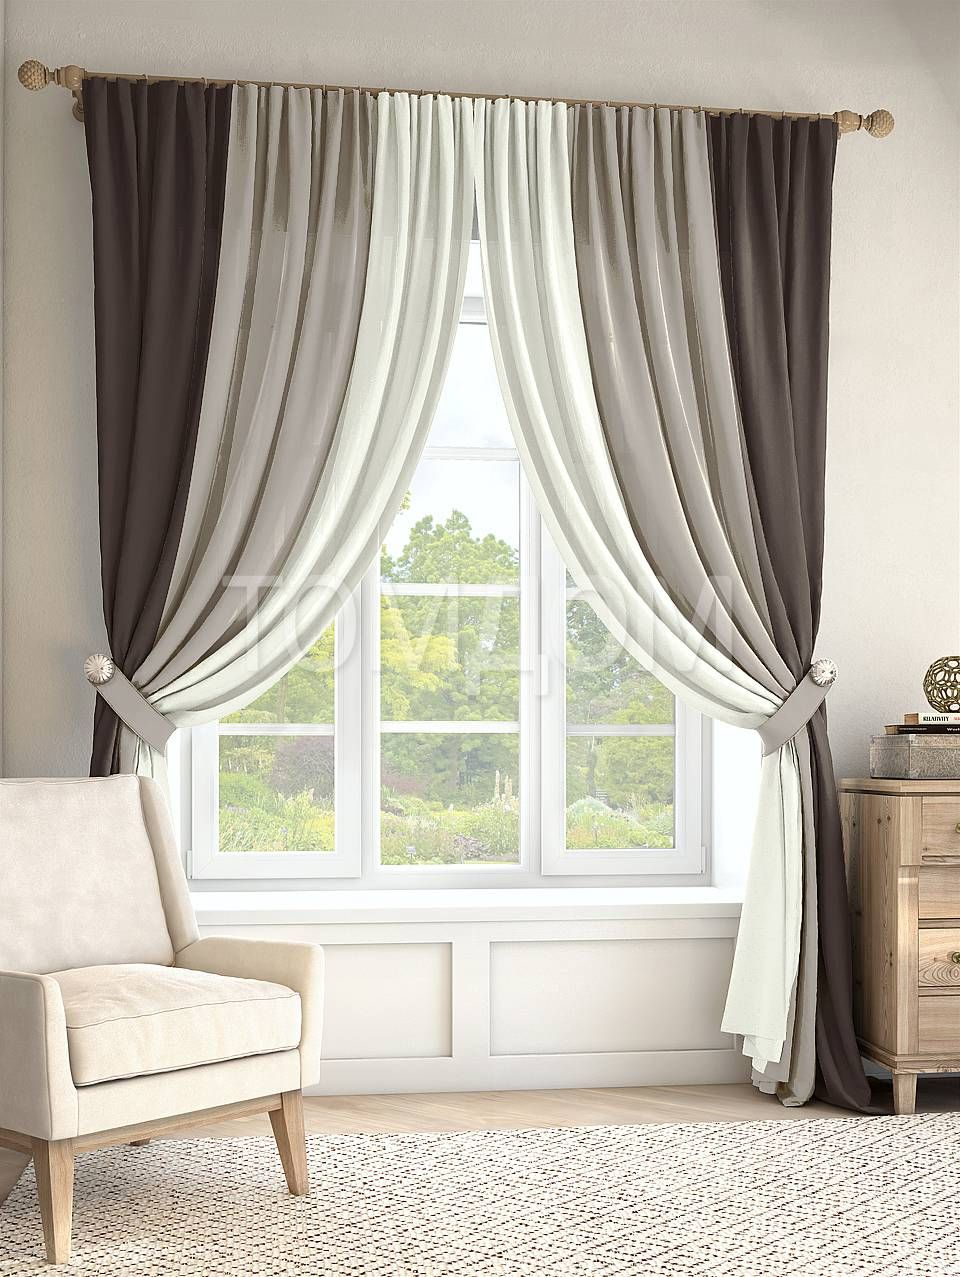 How to choose curtains for the hall - the best design solutions in 2018